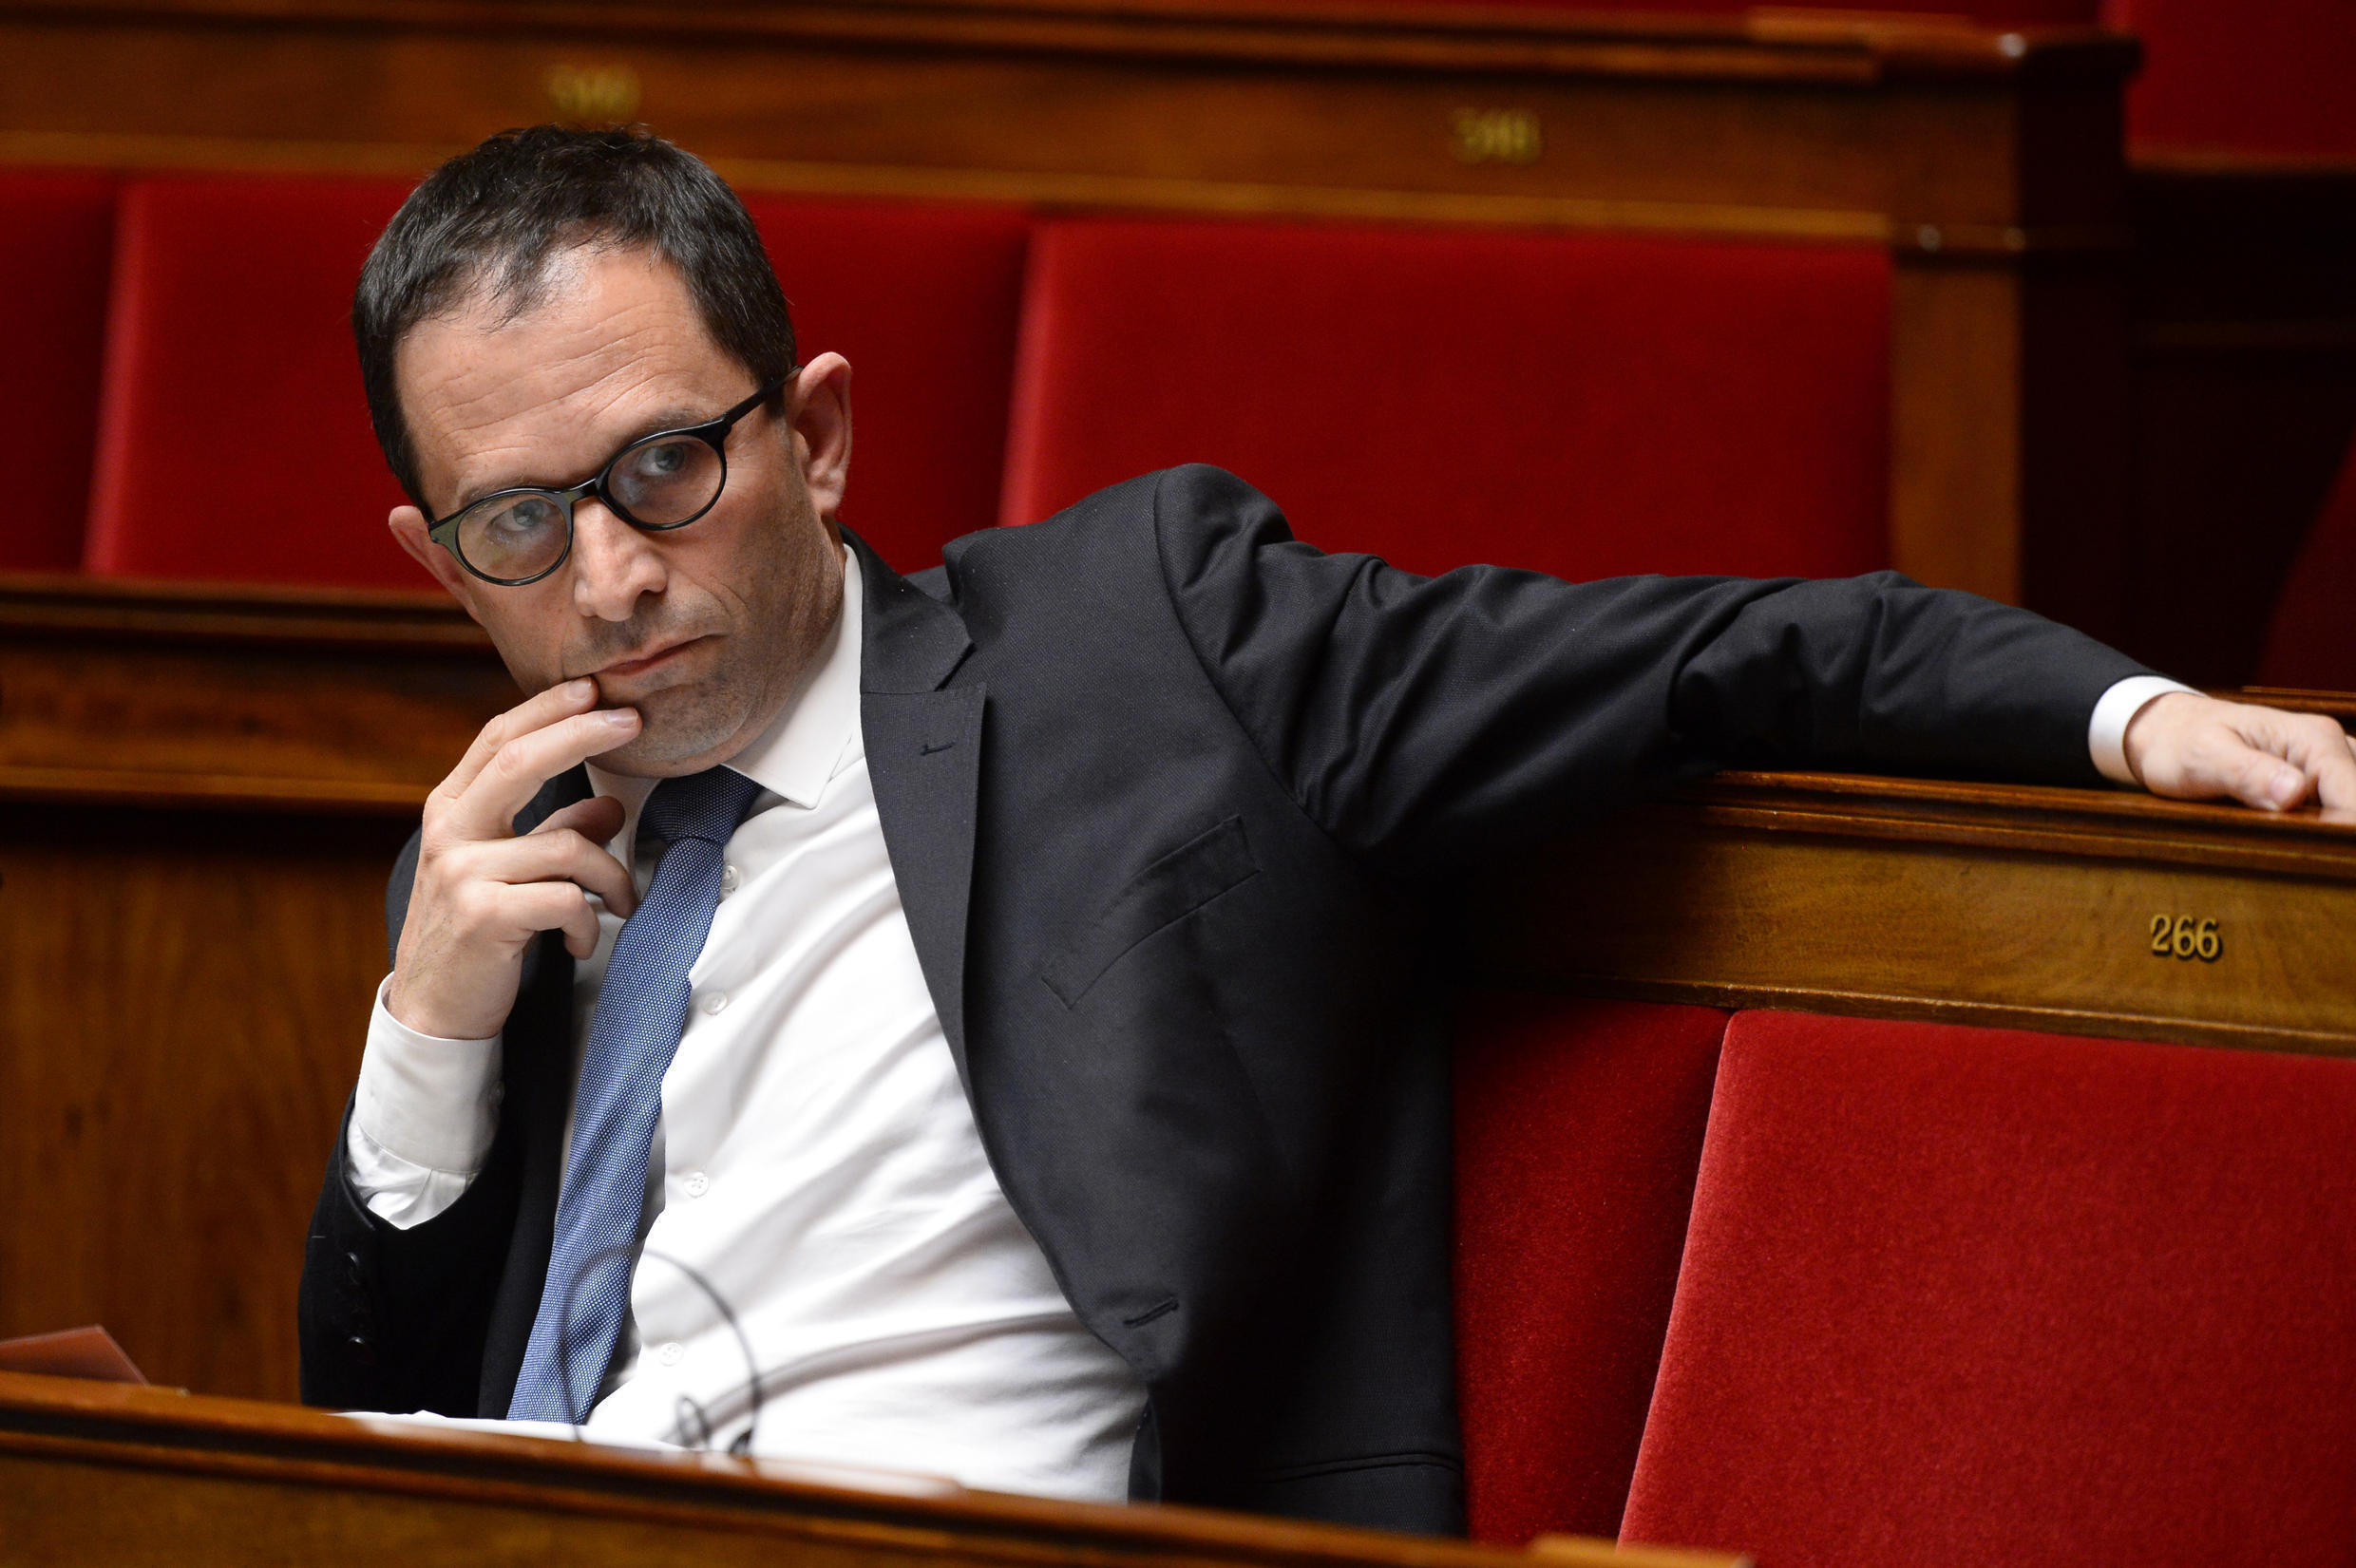 Benoît Hamon has urged French President François Hollande to take a clear position on the burkini issue.